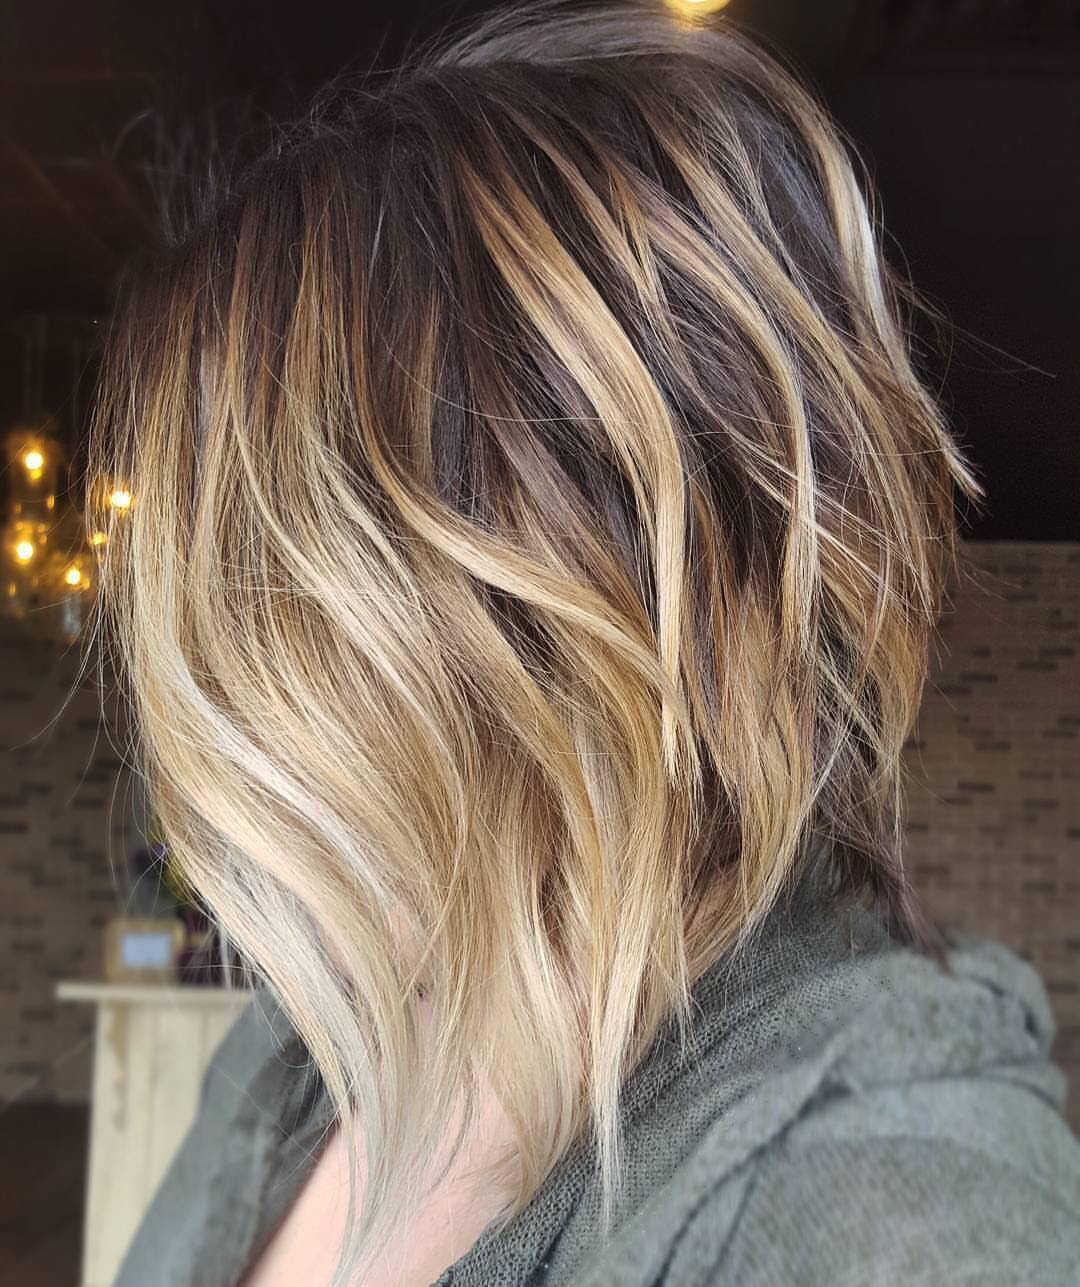 10 Cute Medium Hairstyles With Gorgeous Color Twists Medium